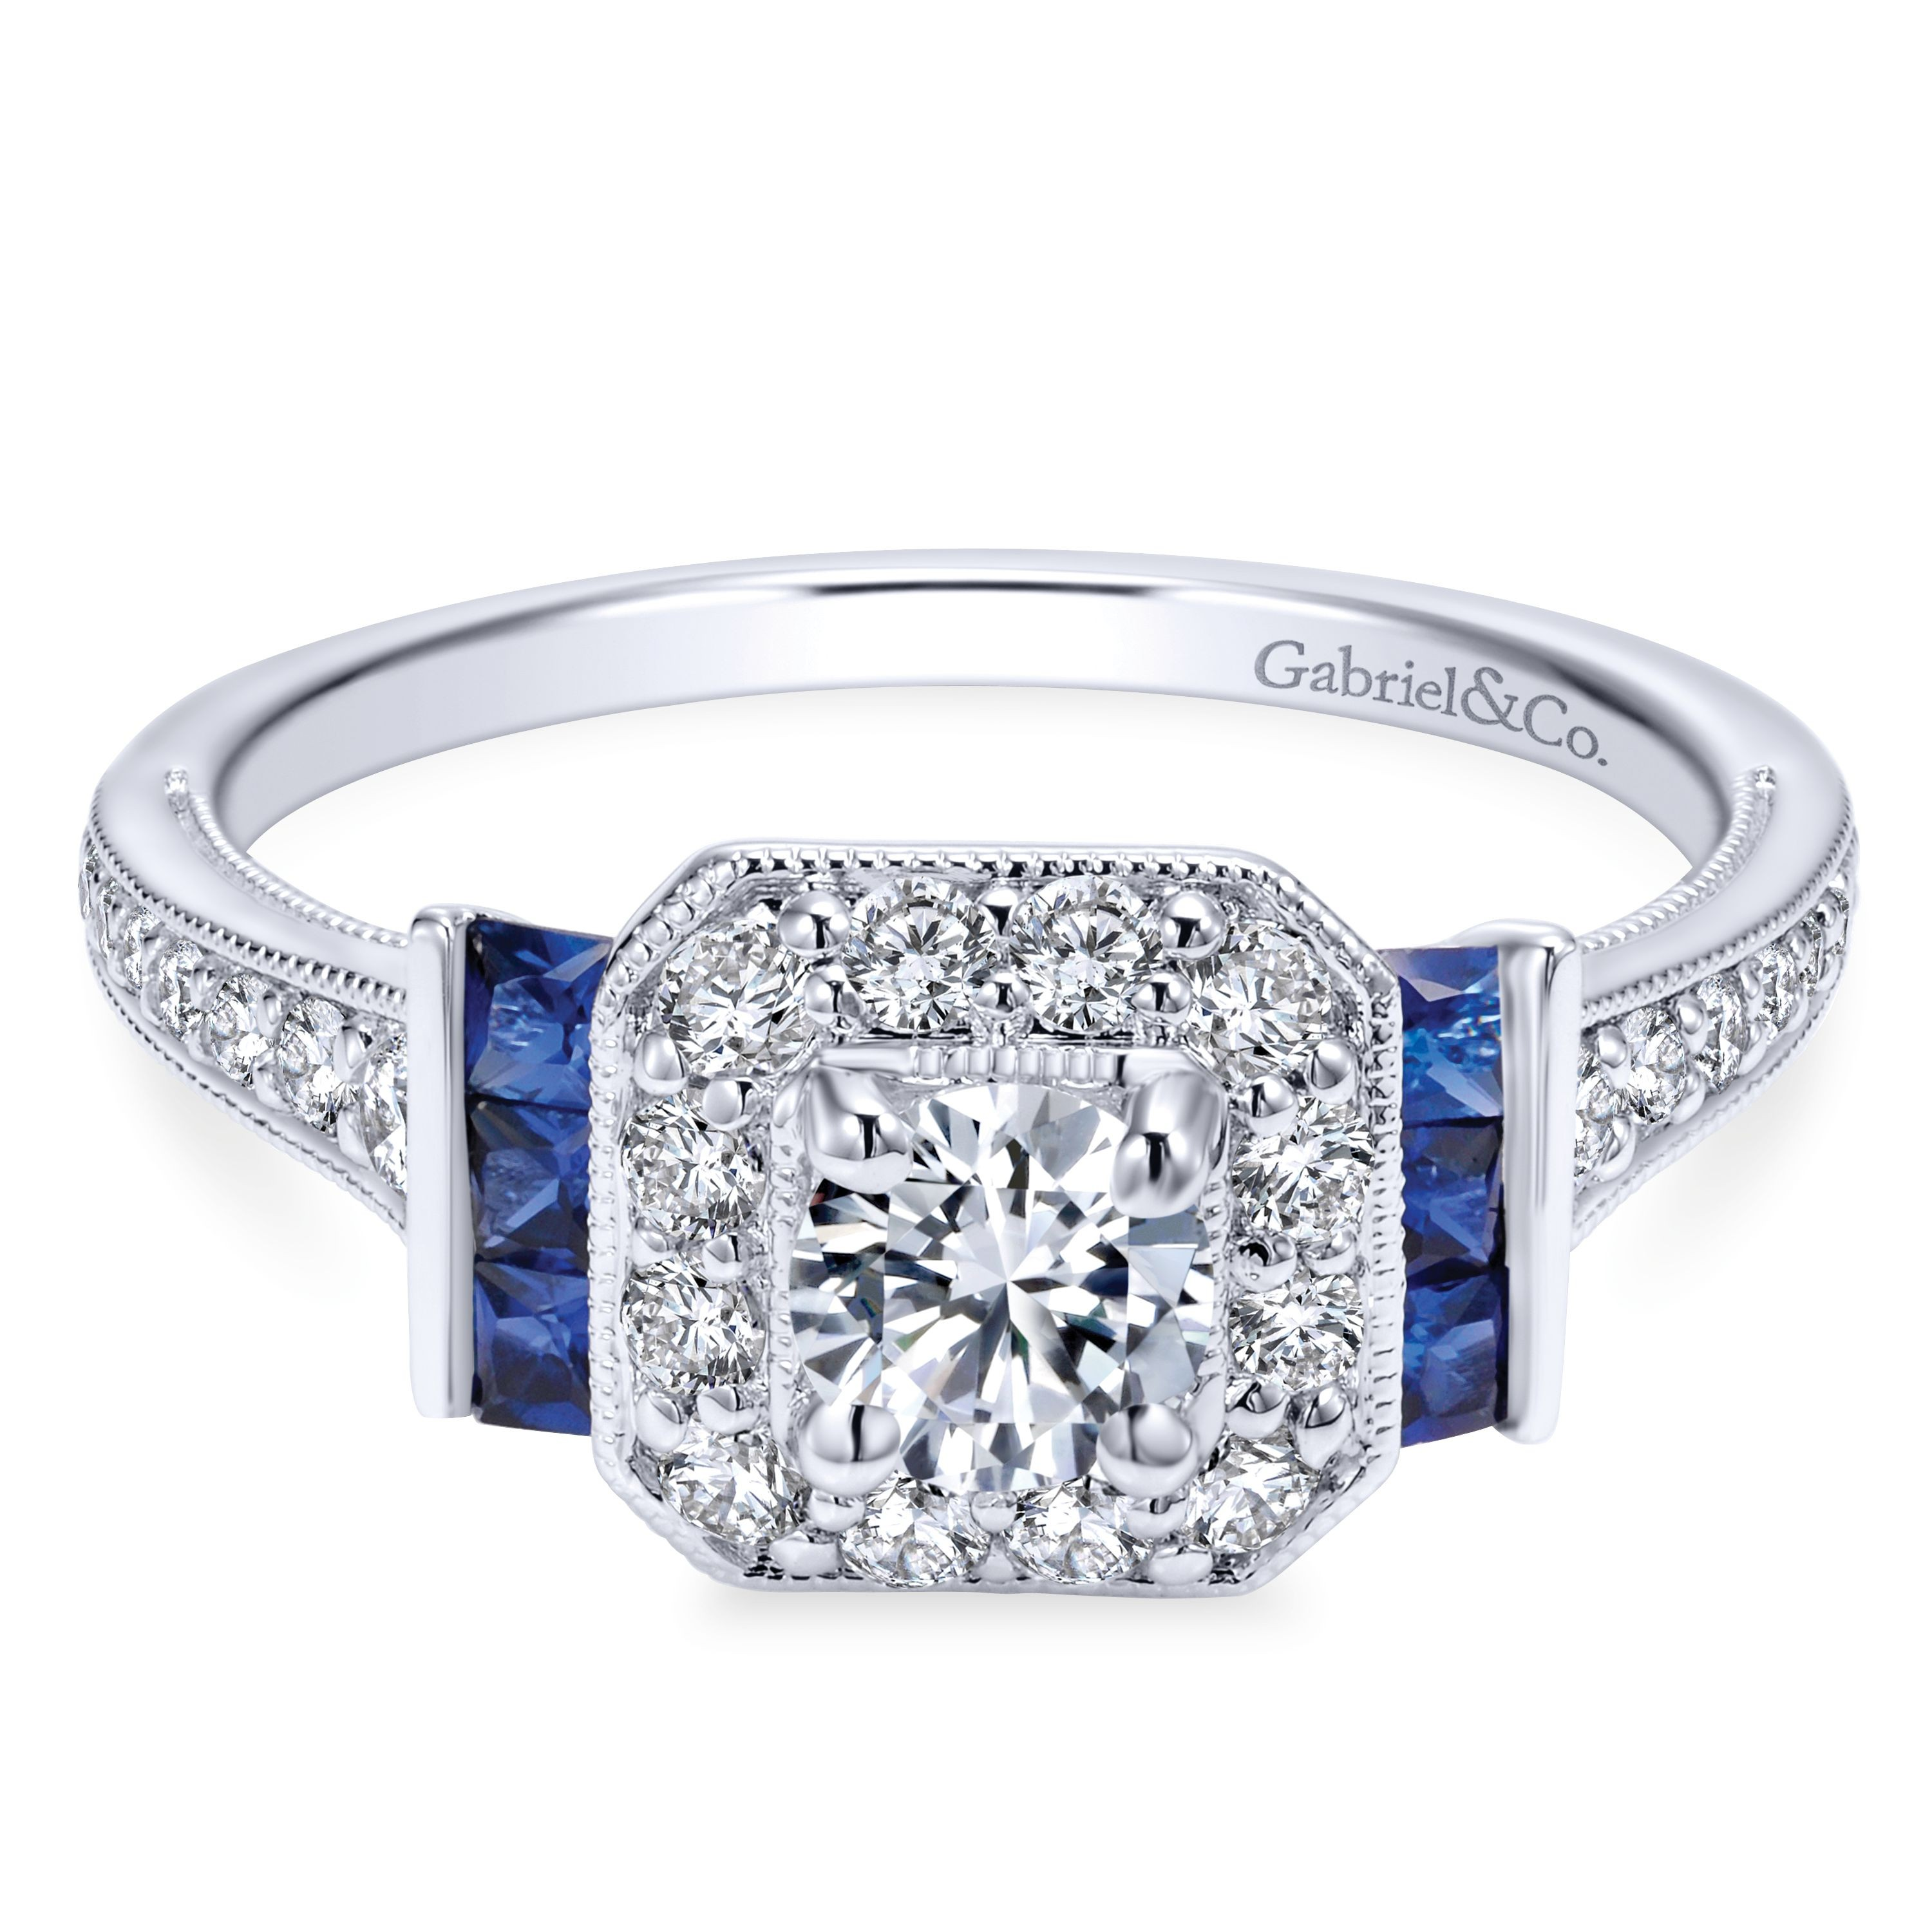 14k White Gold Diamond and Two-Side Sapphire Contemporary Engagement Ring